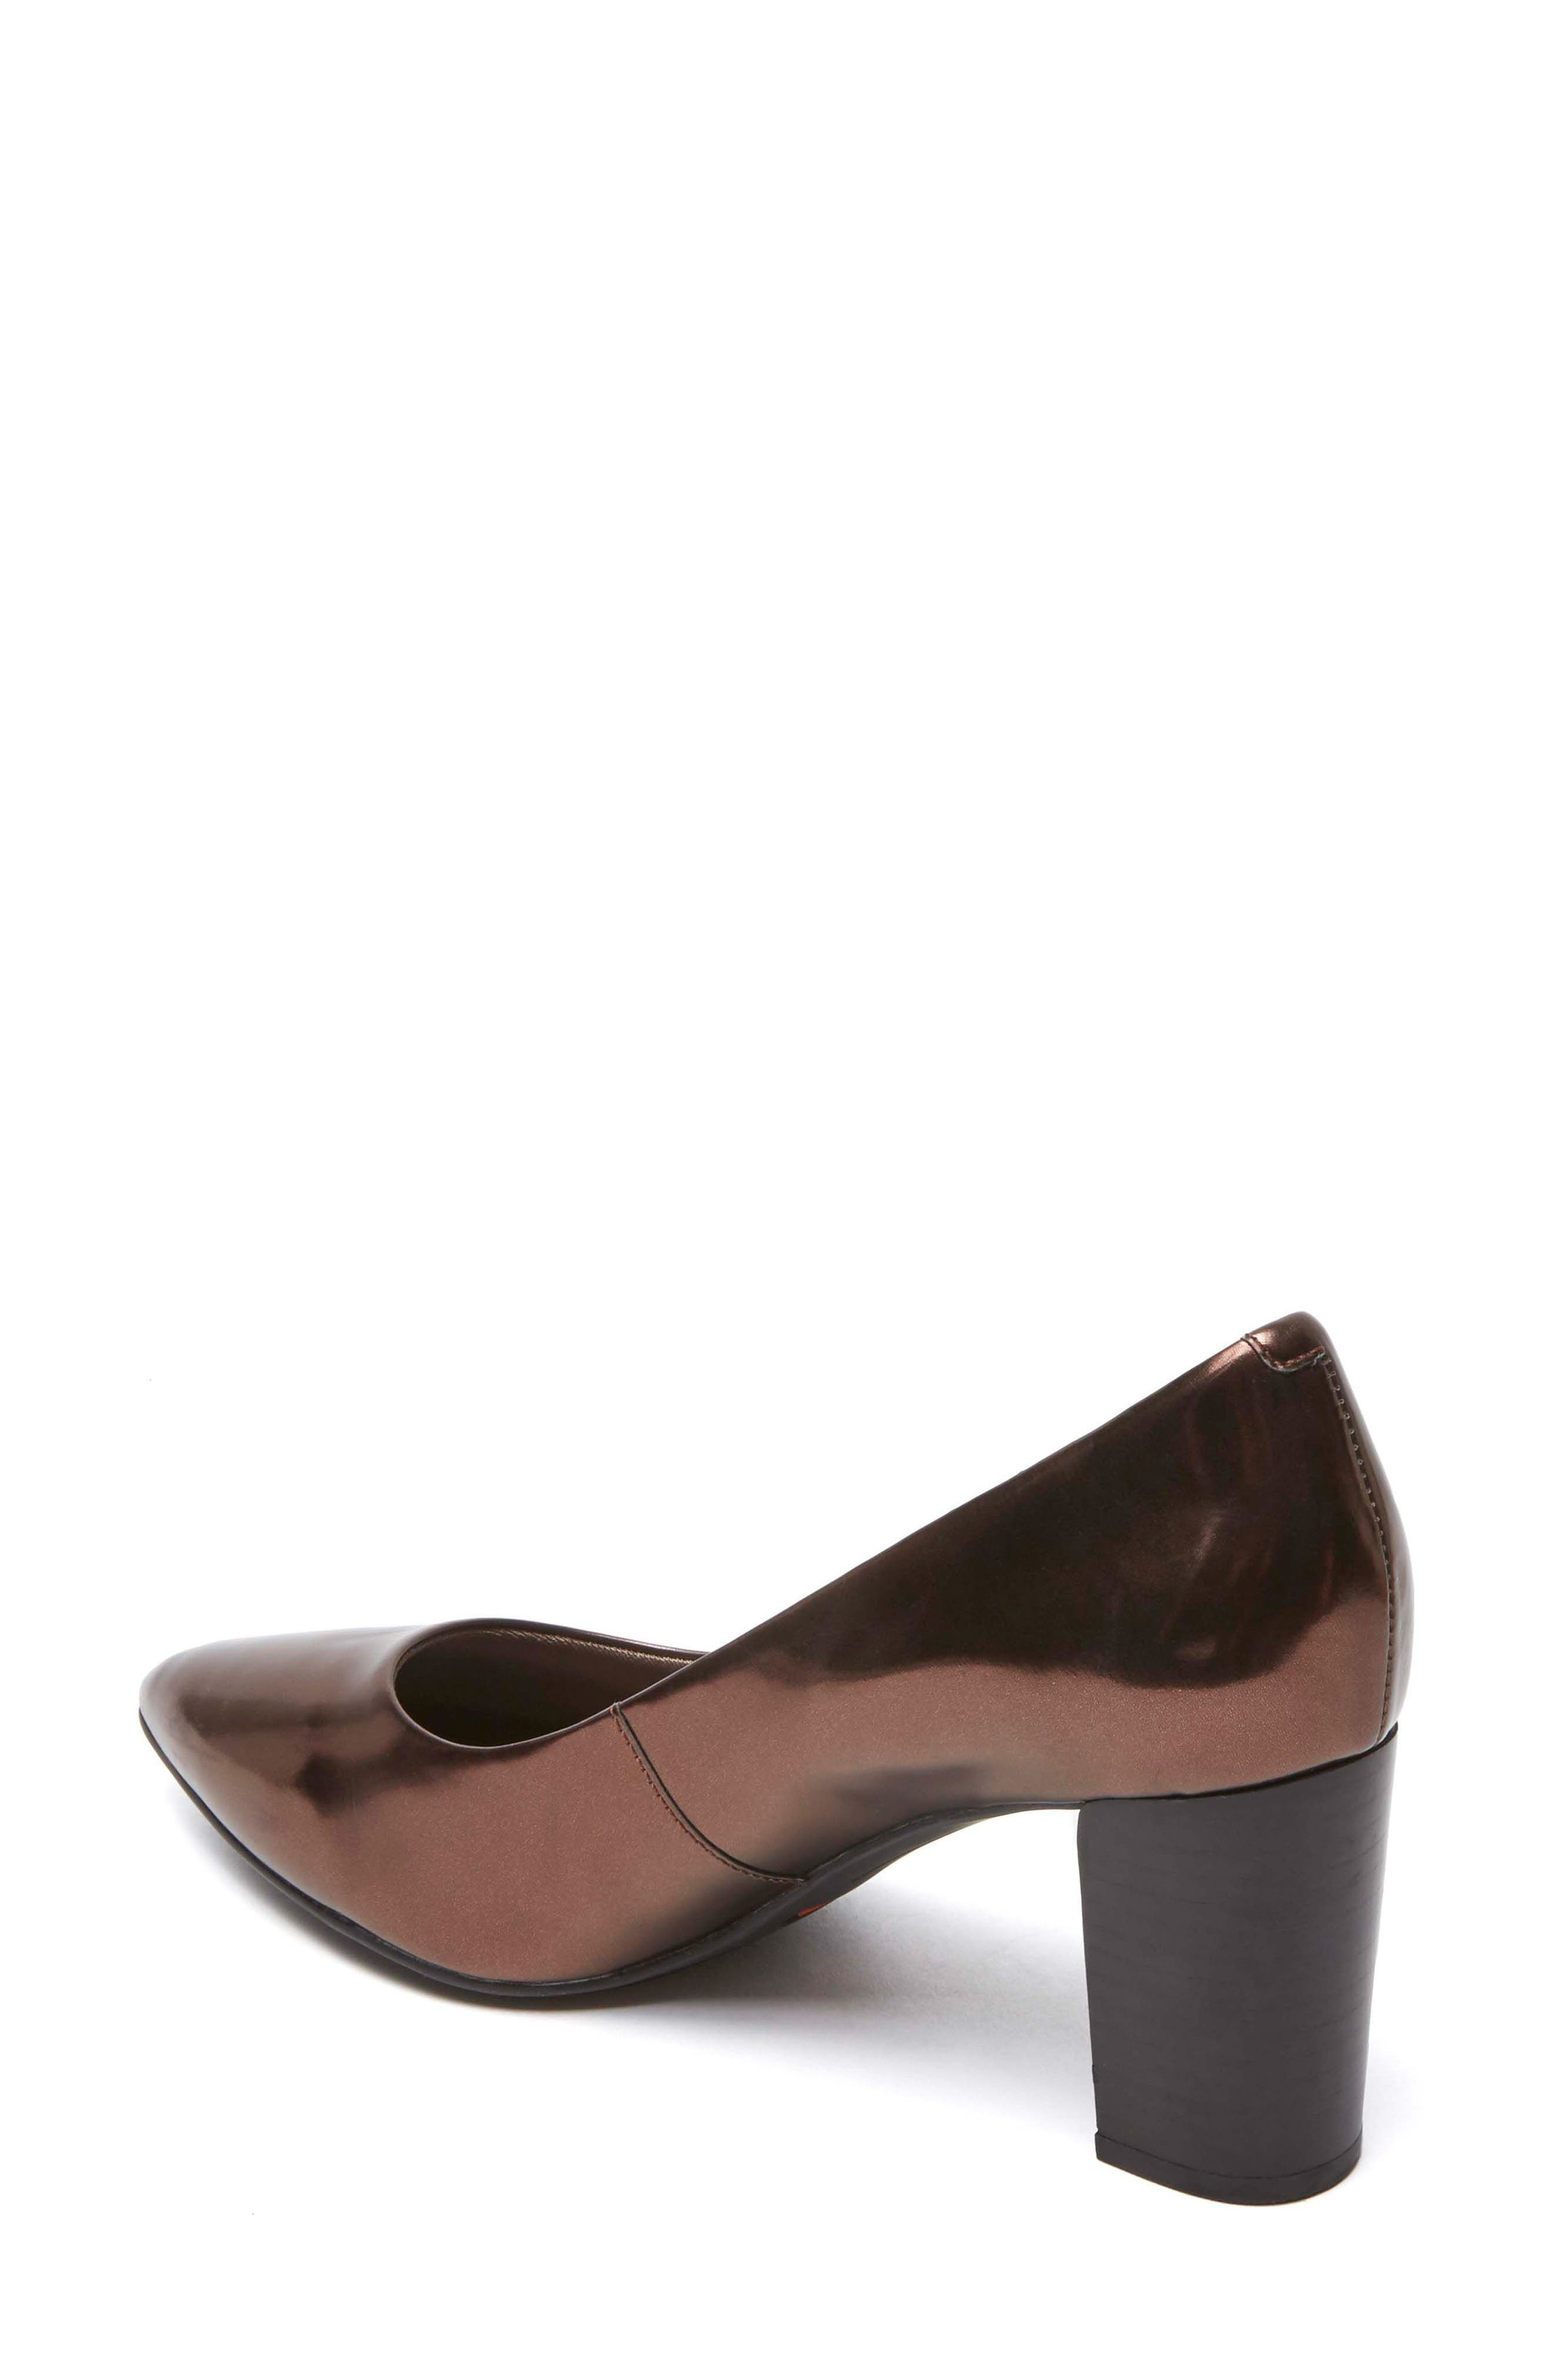 Total Motion Violina Luxe Pointy Toe Pump,                             Alternate thumbnail 2, color,                             BRONZE PATENT LEATHER